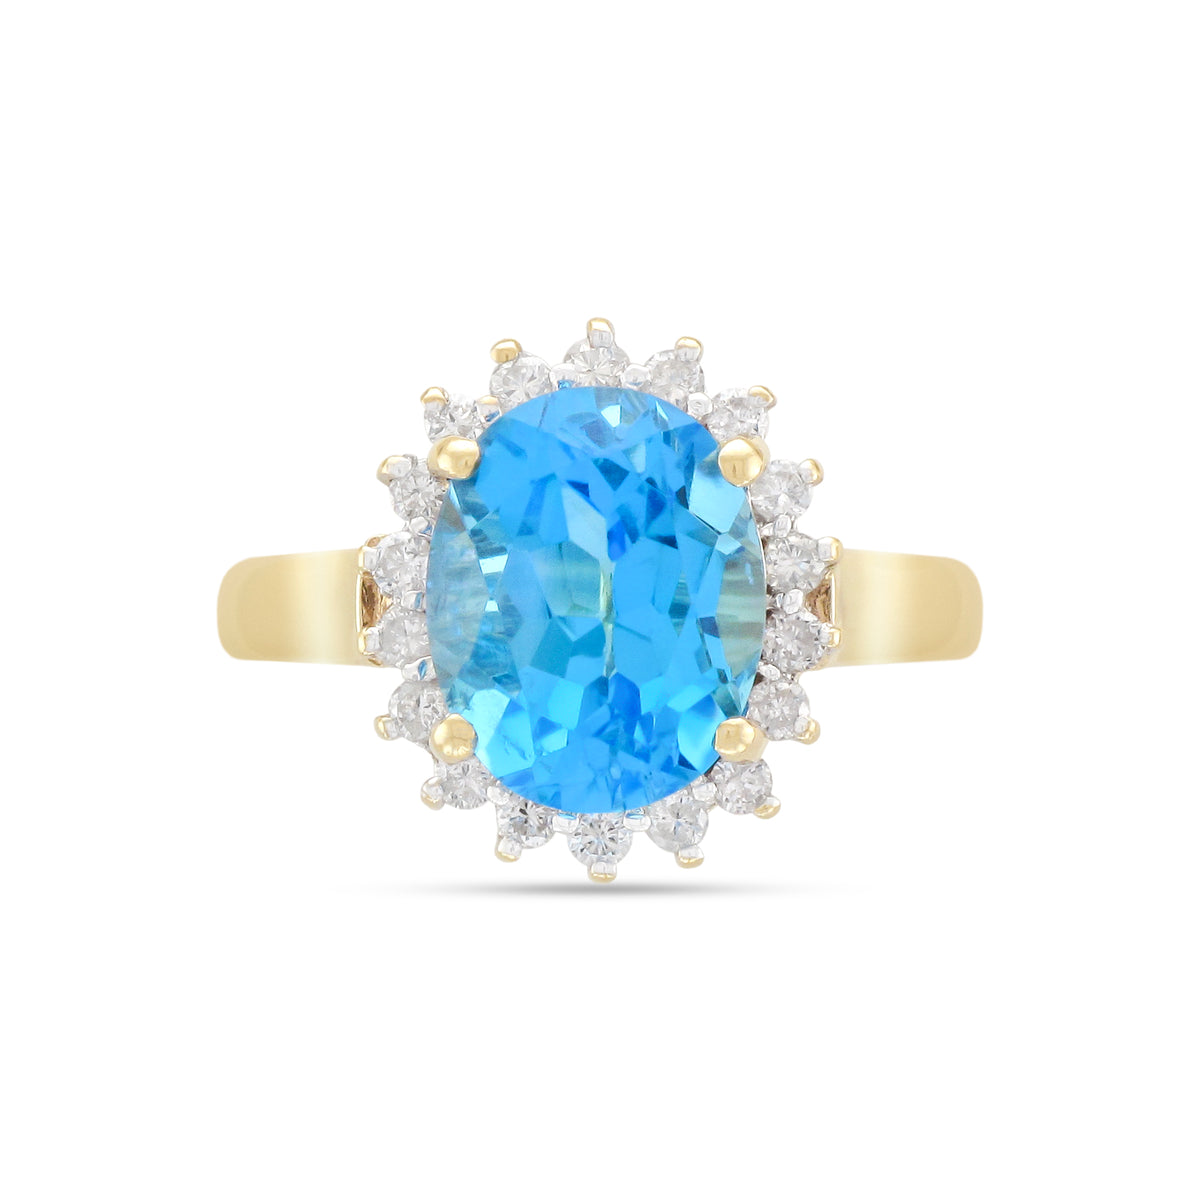 Vintage 9ct Yellow Gold Topaz and Diamond Cluster Ring